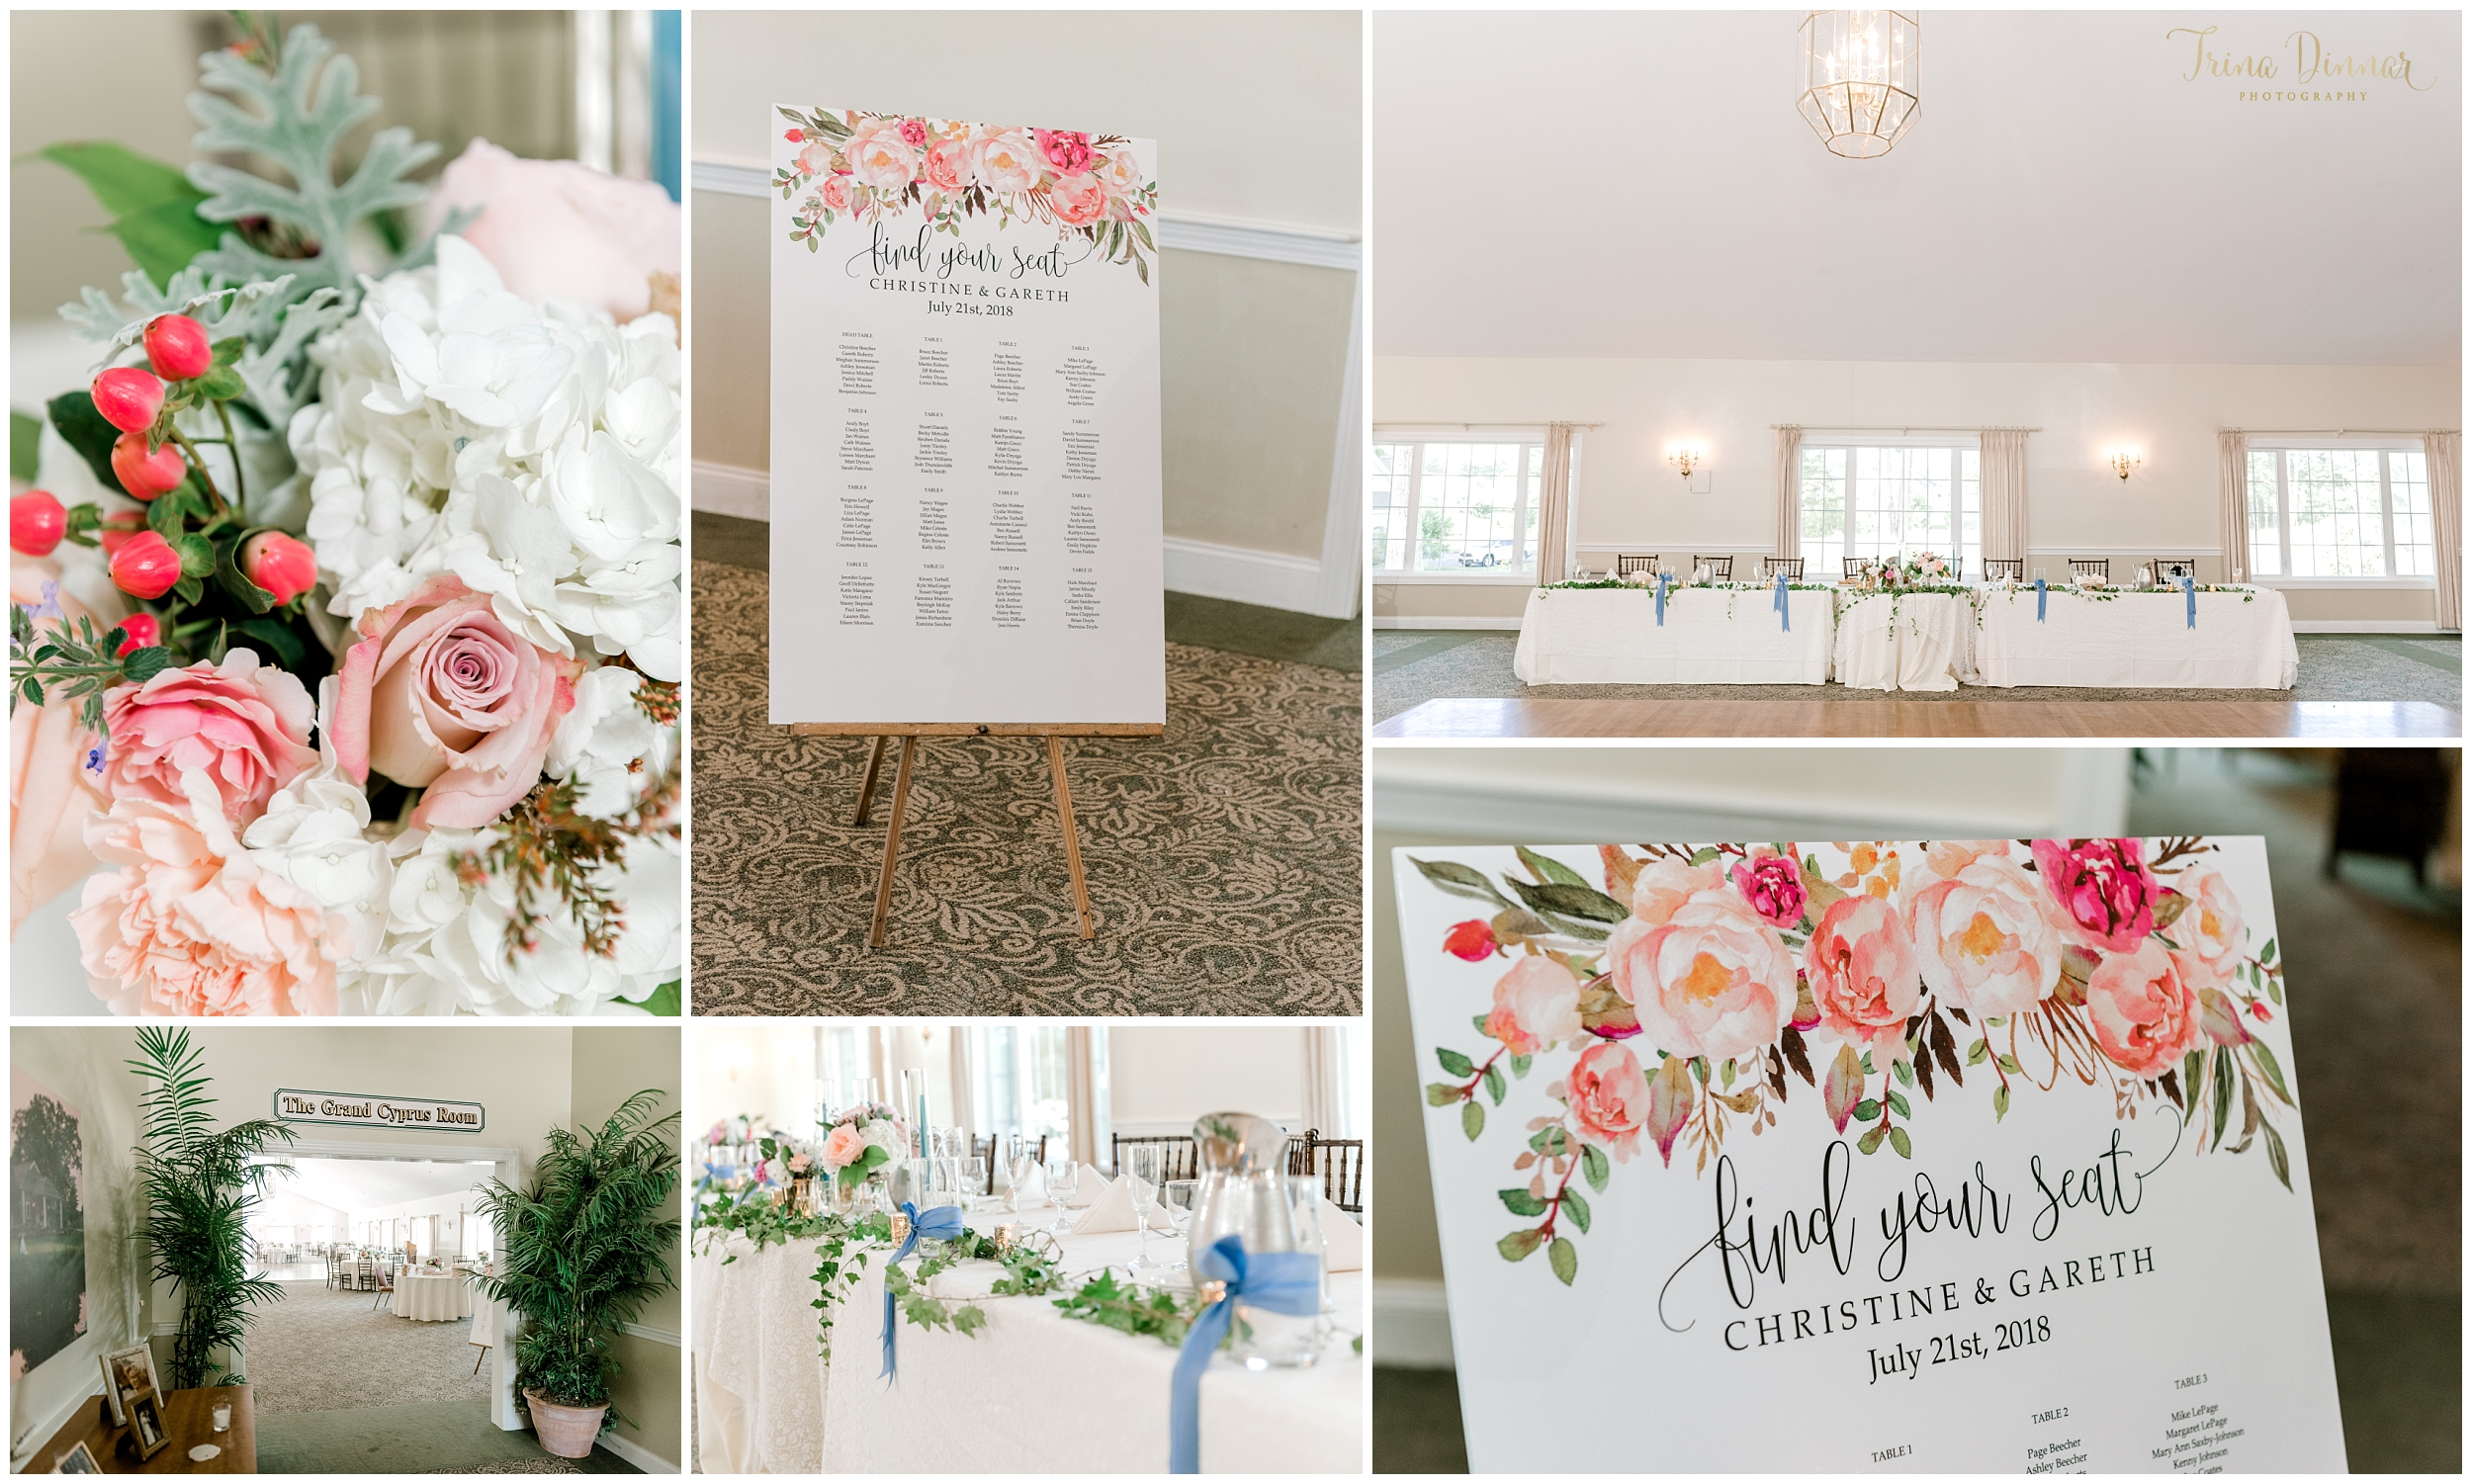 Wedding Decor and Signage at Dungrass Golf Club in OOB, Maine.